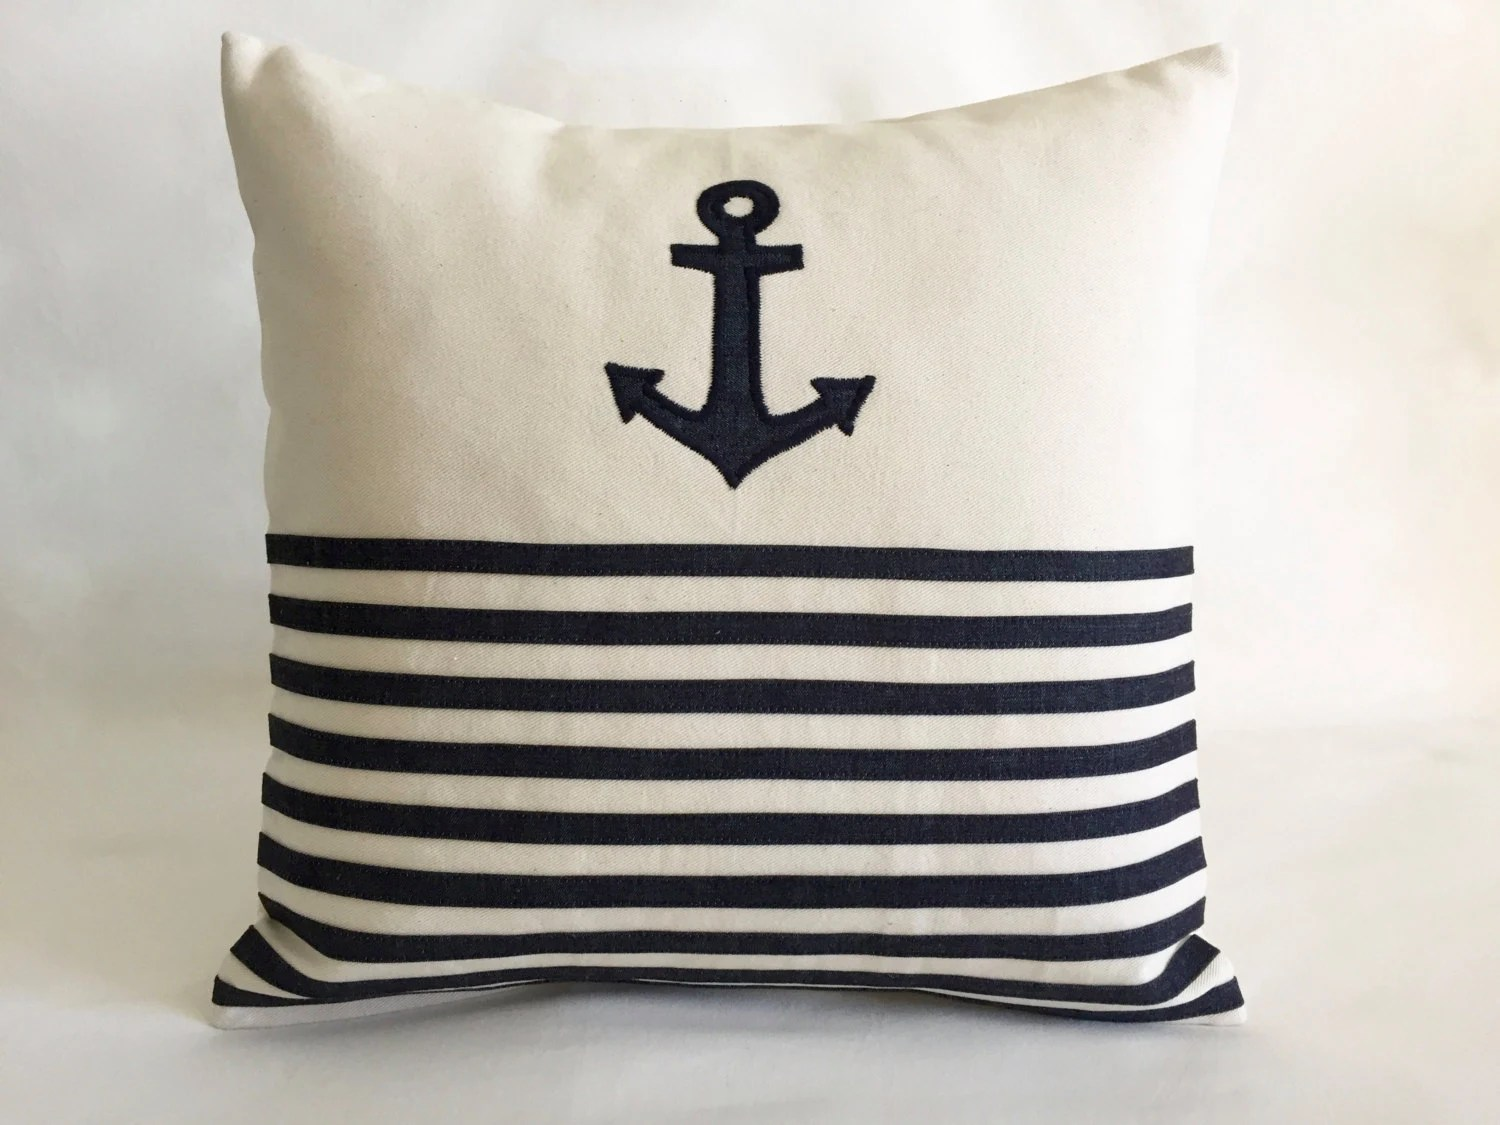 Nautical Sofa Throws Nautical Throw Pillows Anchor Cover Cushion Navy Blue Stripes Denim And Natural Cotton Canvas 18 X 18 Indoor Pillows For Chair And Sofa